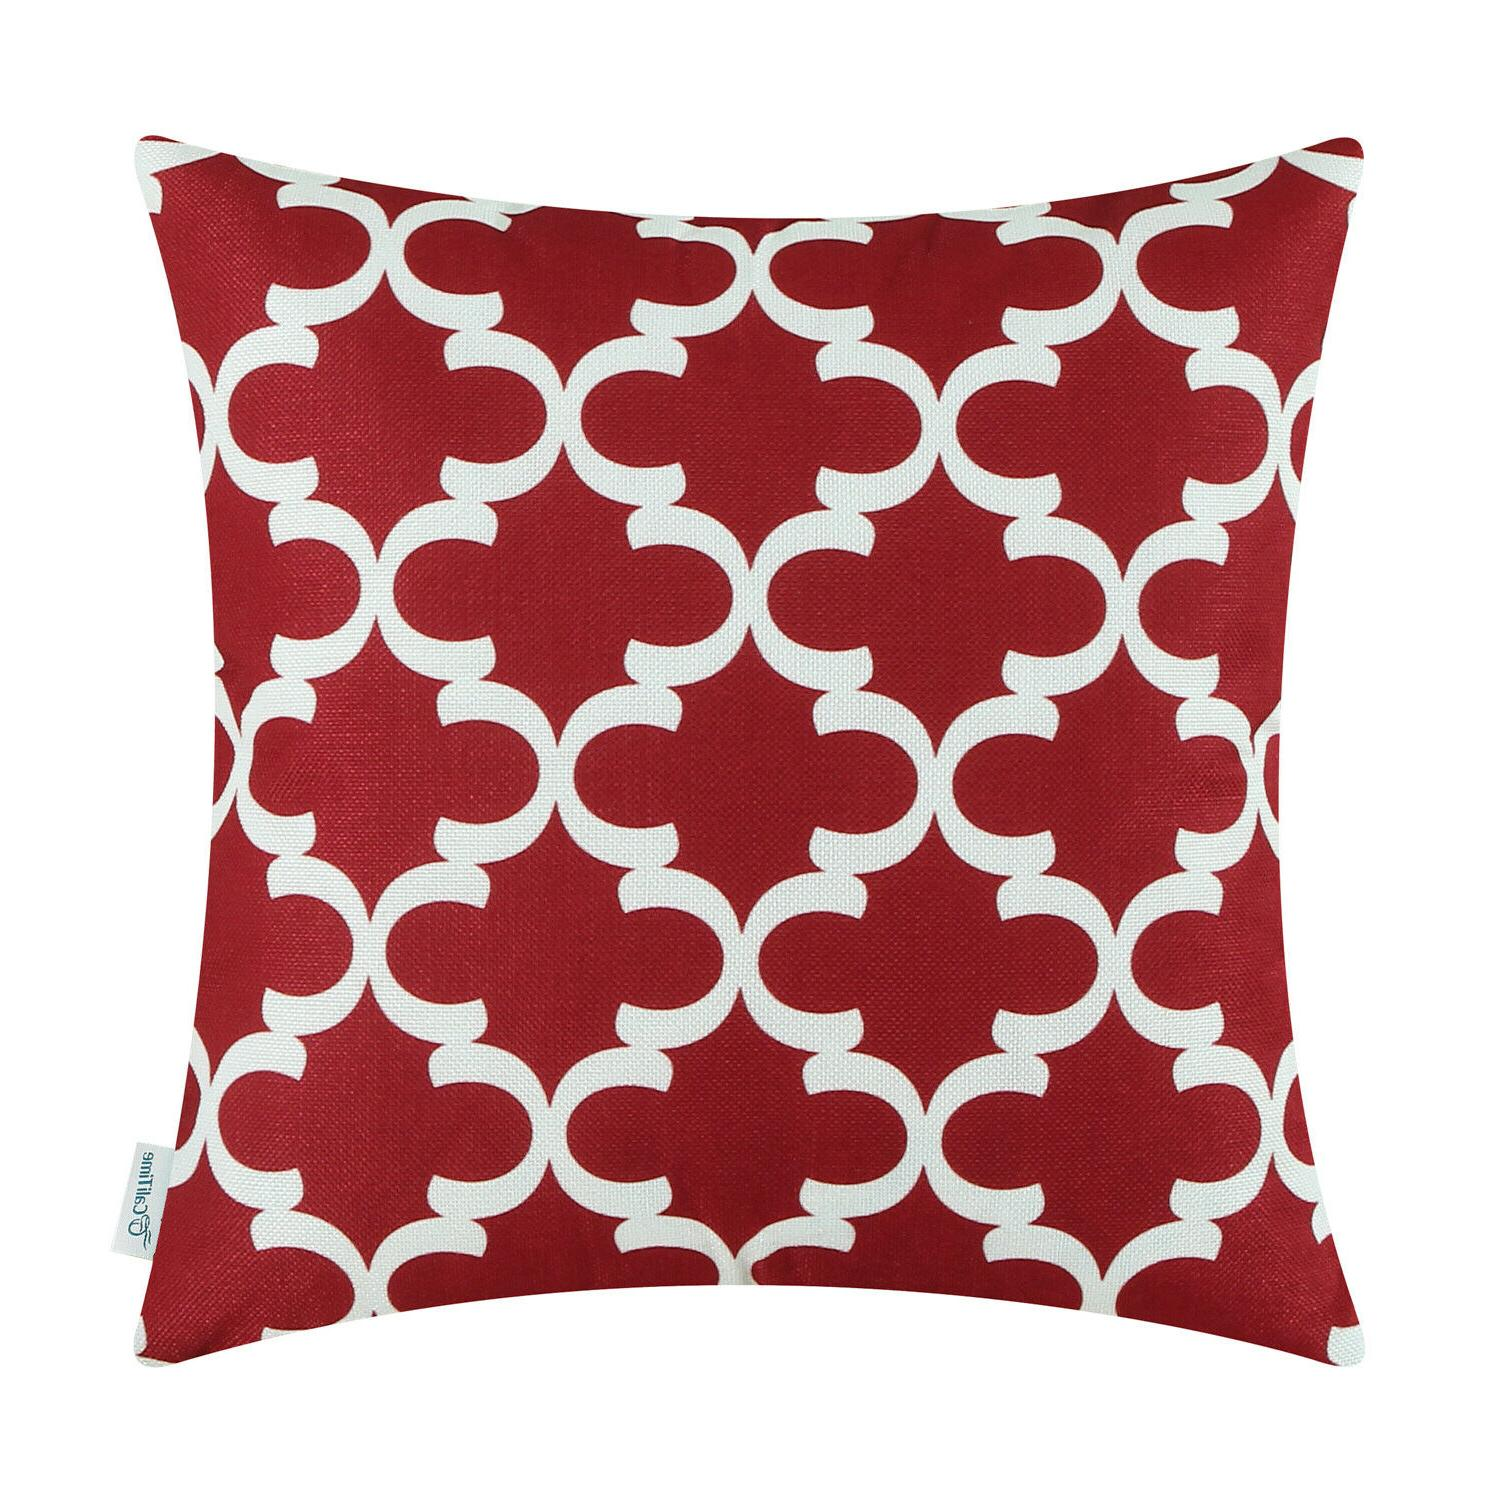 CaliTime Cushion Covers Throw Pillows Shell Geometric Home S